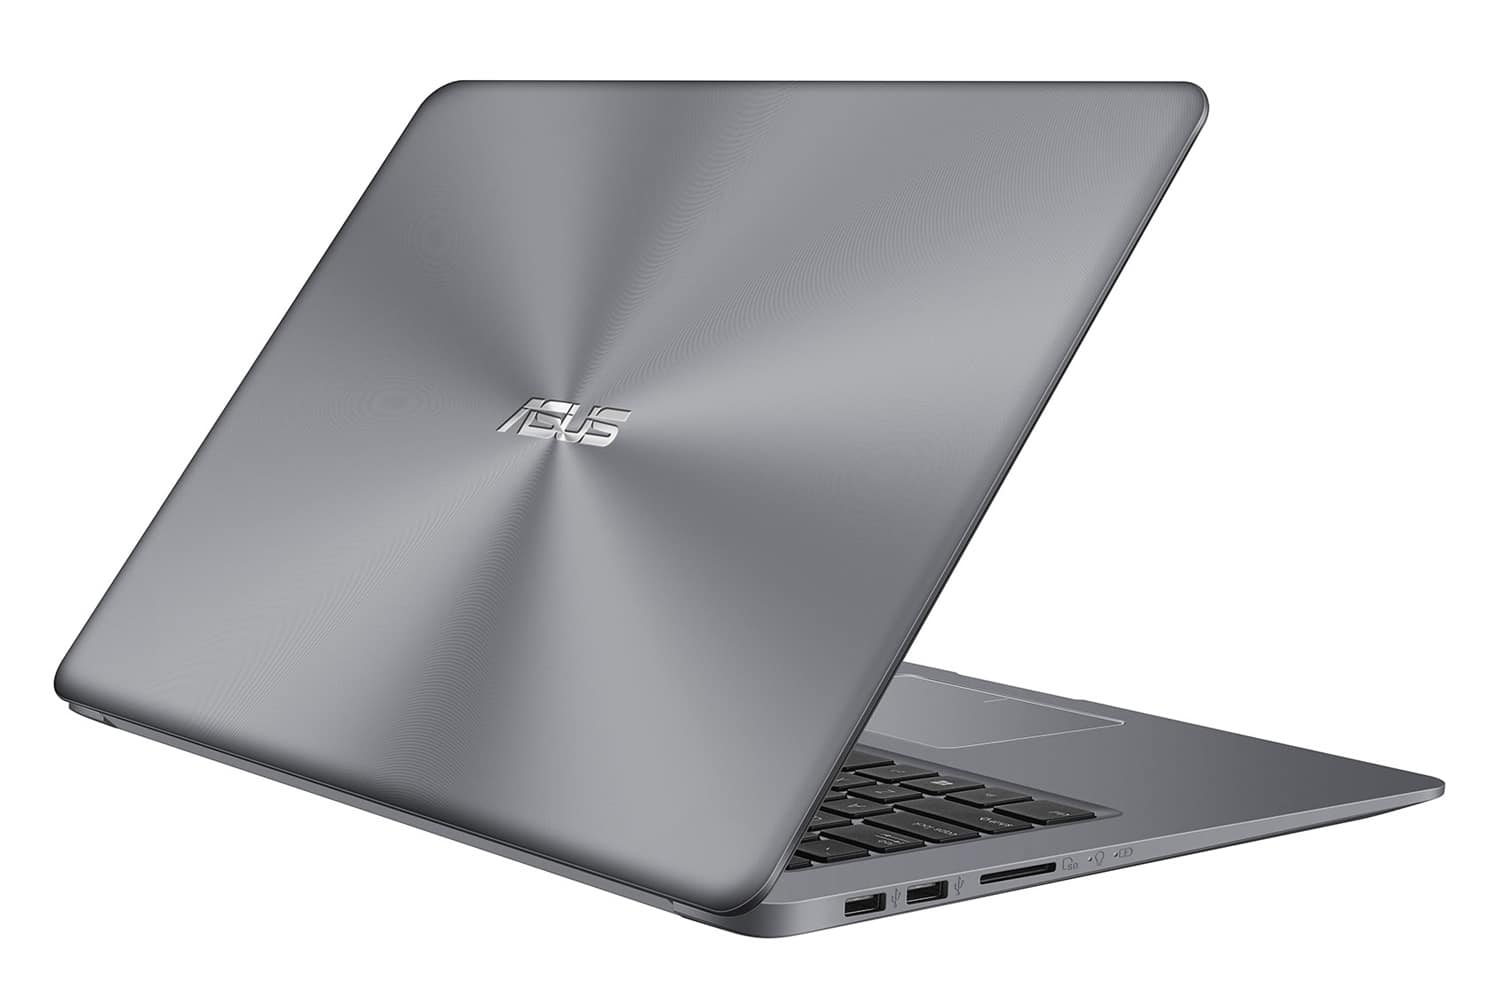 Asus Vivobook X510UA-EJ756T, ultrabook 15 pouces Full i3 Kaby SSD/HDD à 599€